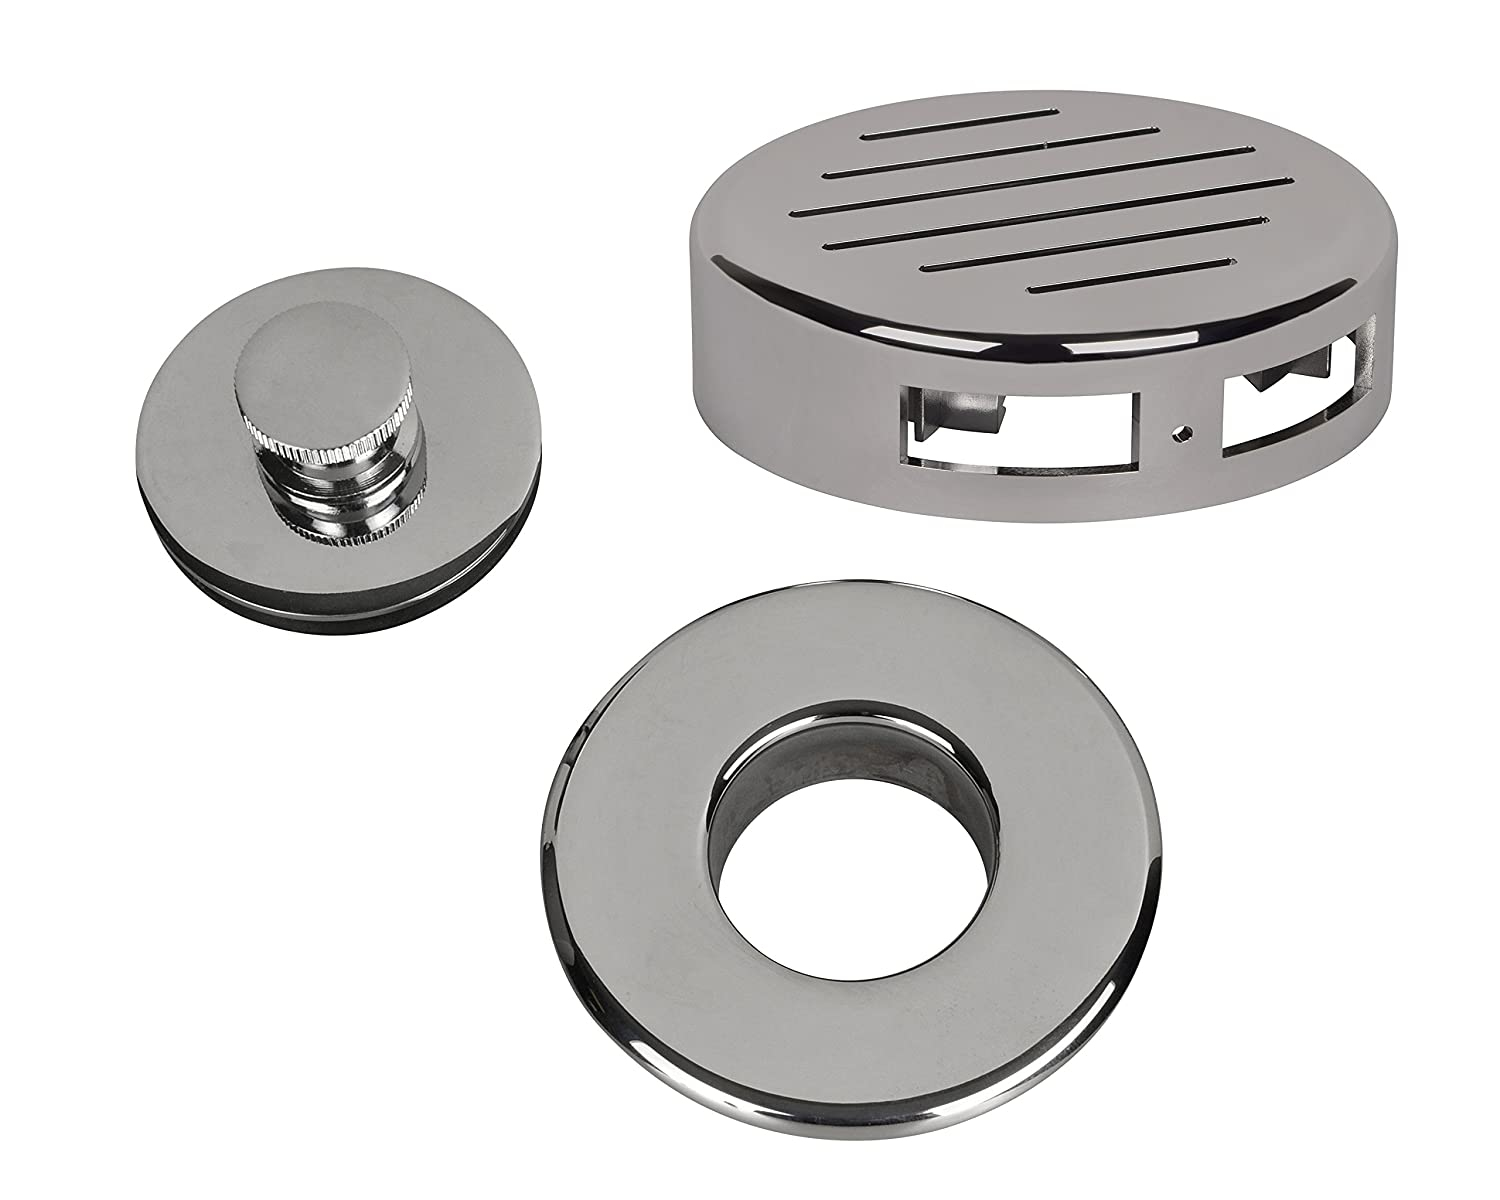 AB&A 60170 Press-In Strainer with'Classic' Overflow Plate and Push eN Lift Stopper, Chrome Finish IPSCO